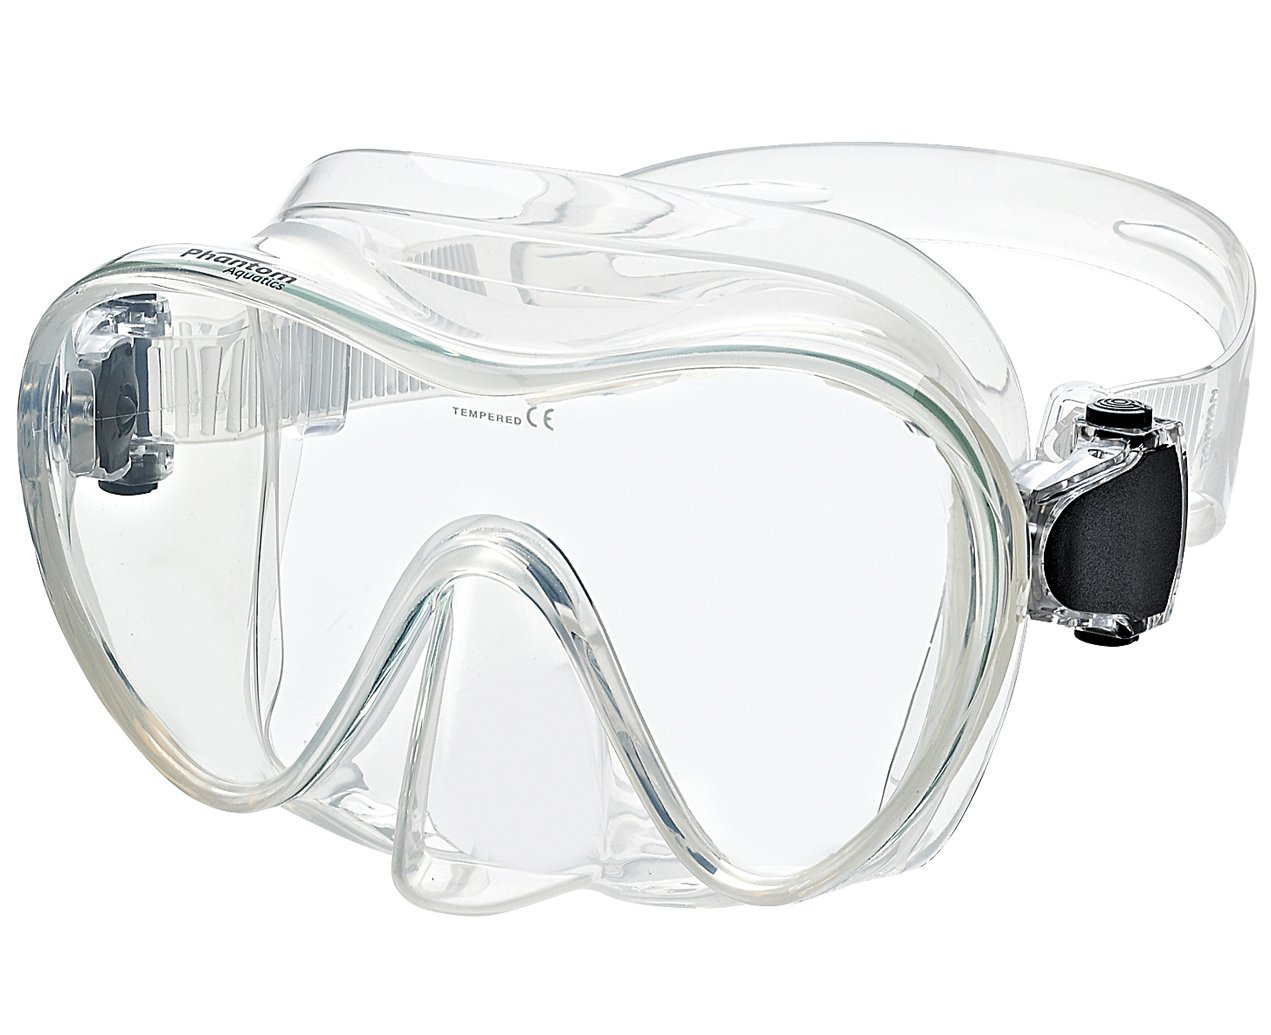 Phantom Aquatics Frameless Mask with Adjustable Neoprene Mask Strap, Clear by Phantom Aquatics